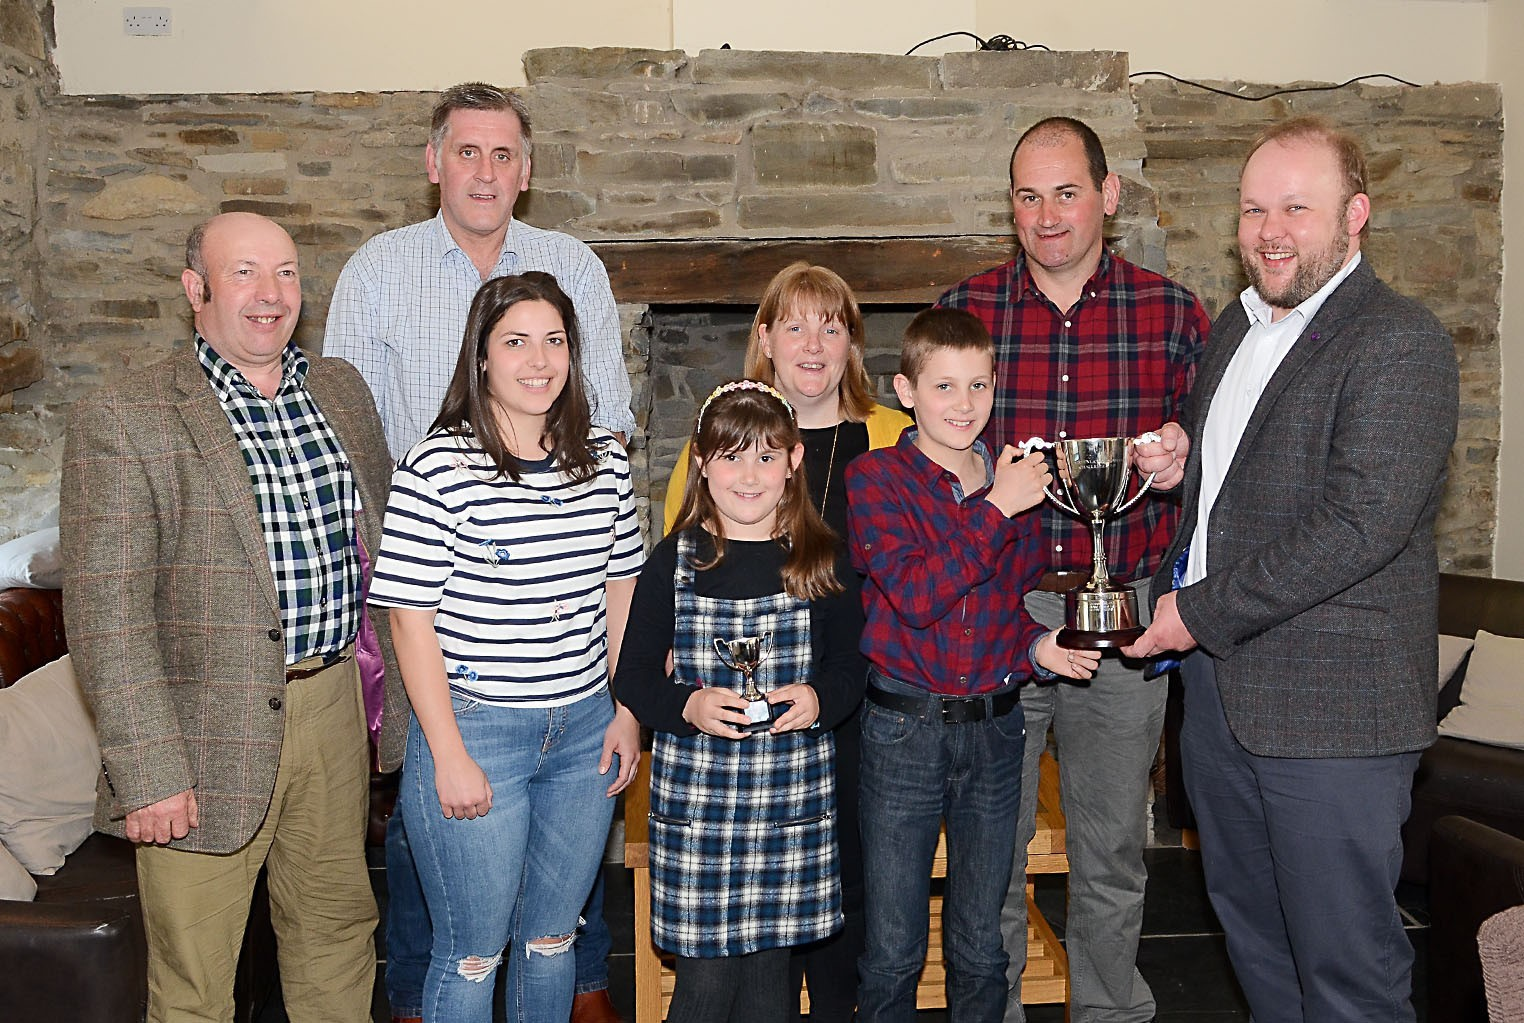 Ceredigion Sheep Exhibitor of the Year – Geraint and Kim Williams, Rhys and Nia of Tynllyn, Llanwnen PICTURE: Tim Jones